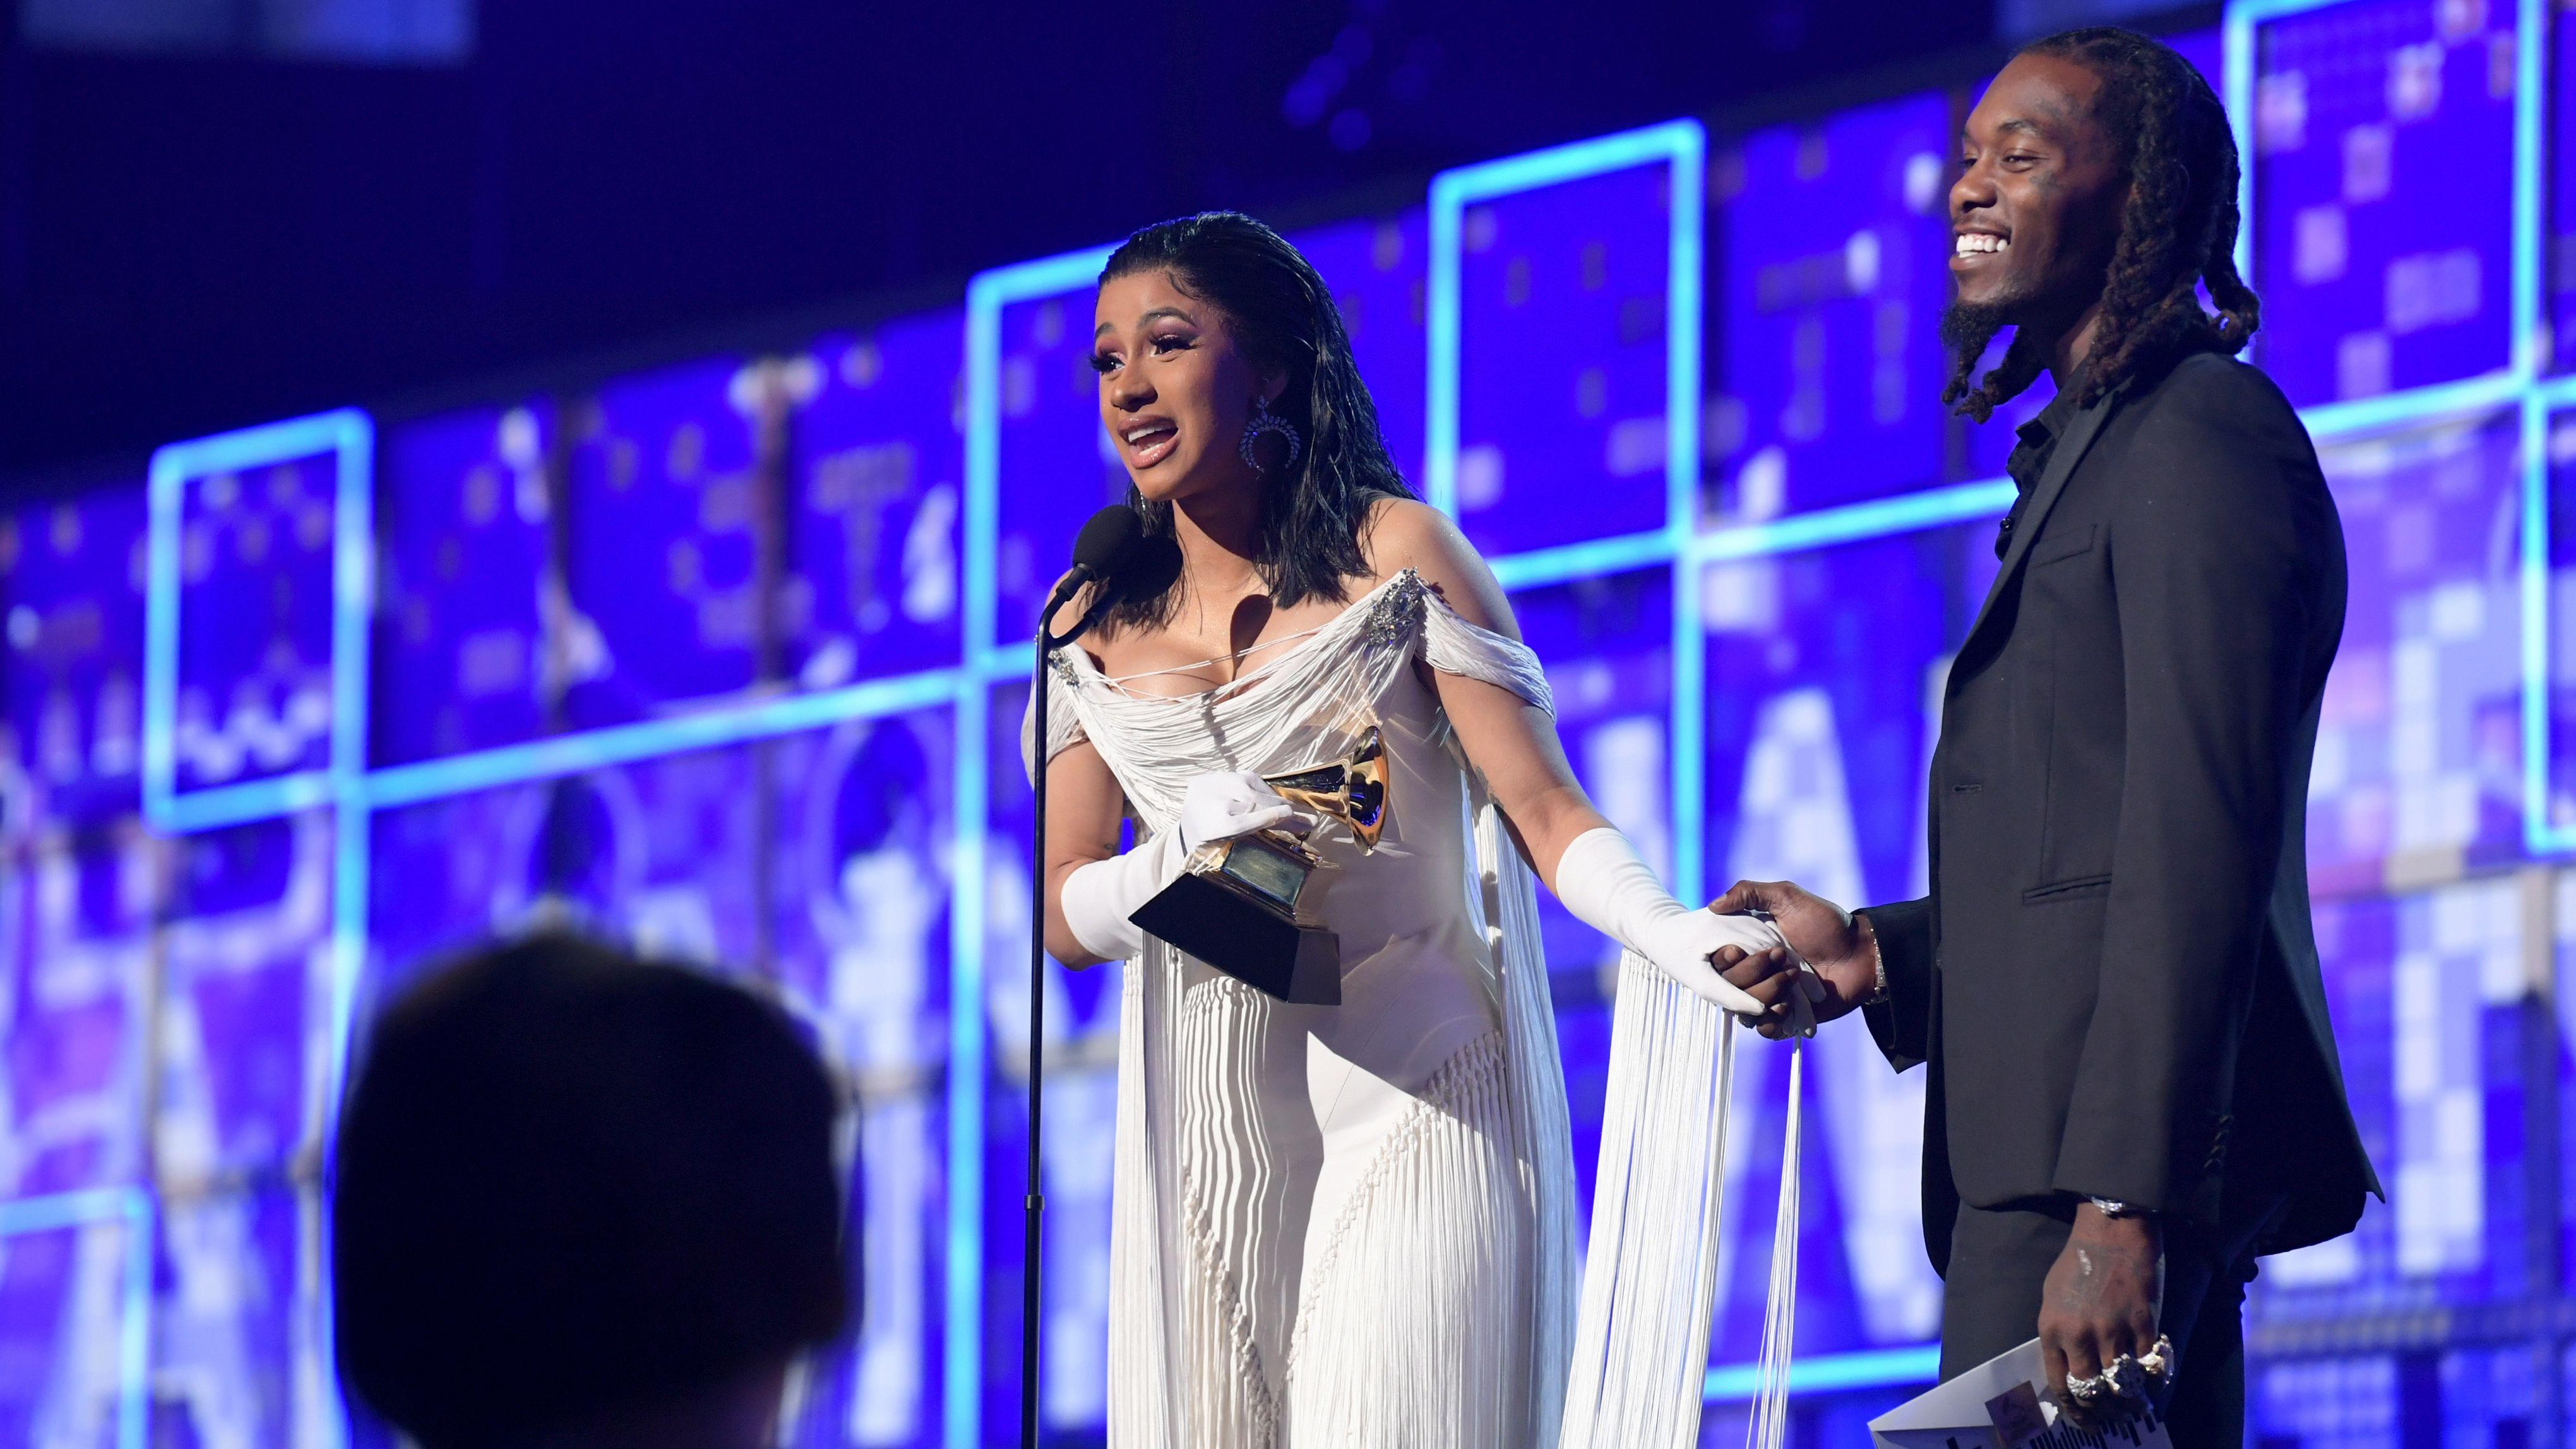 Cardi B Becomes First Solo Female to Win Rap Album of the Year Grammy